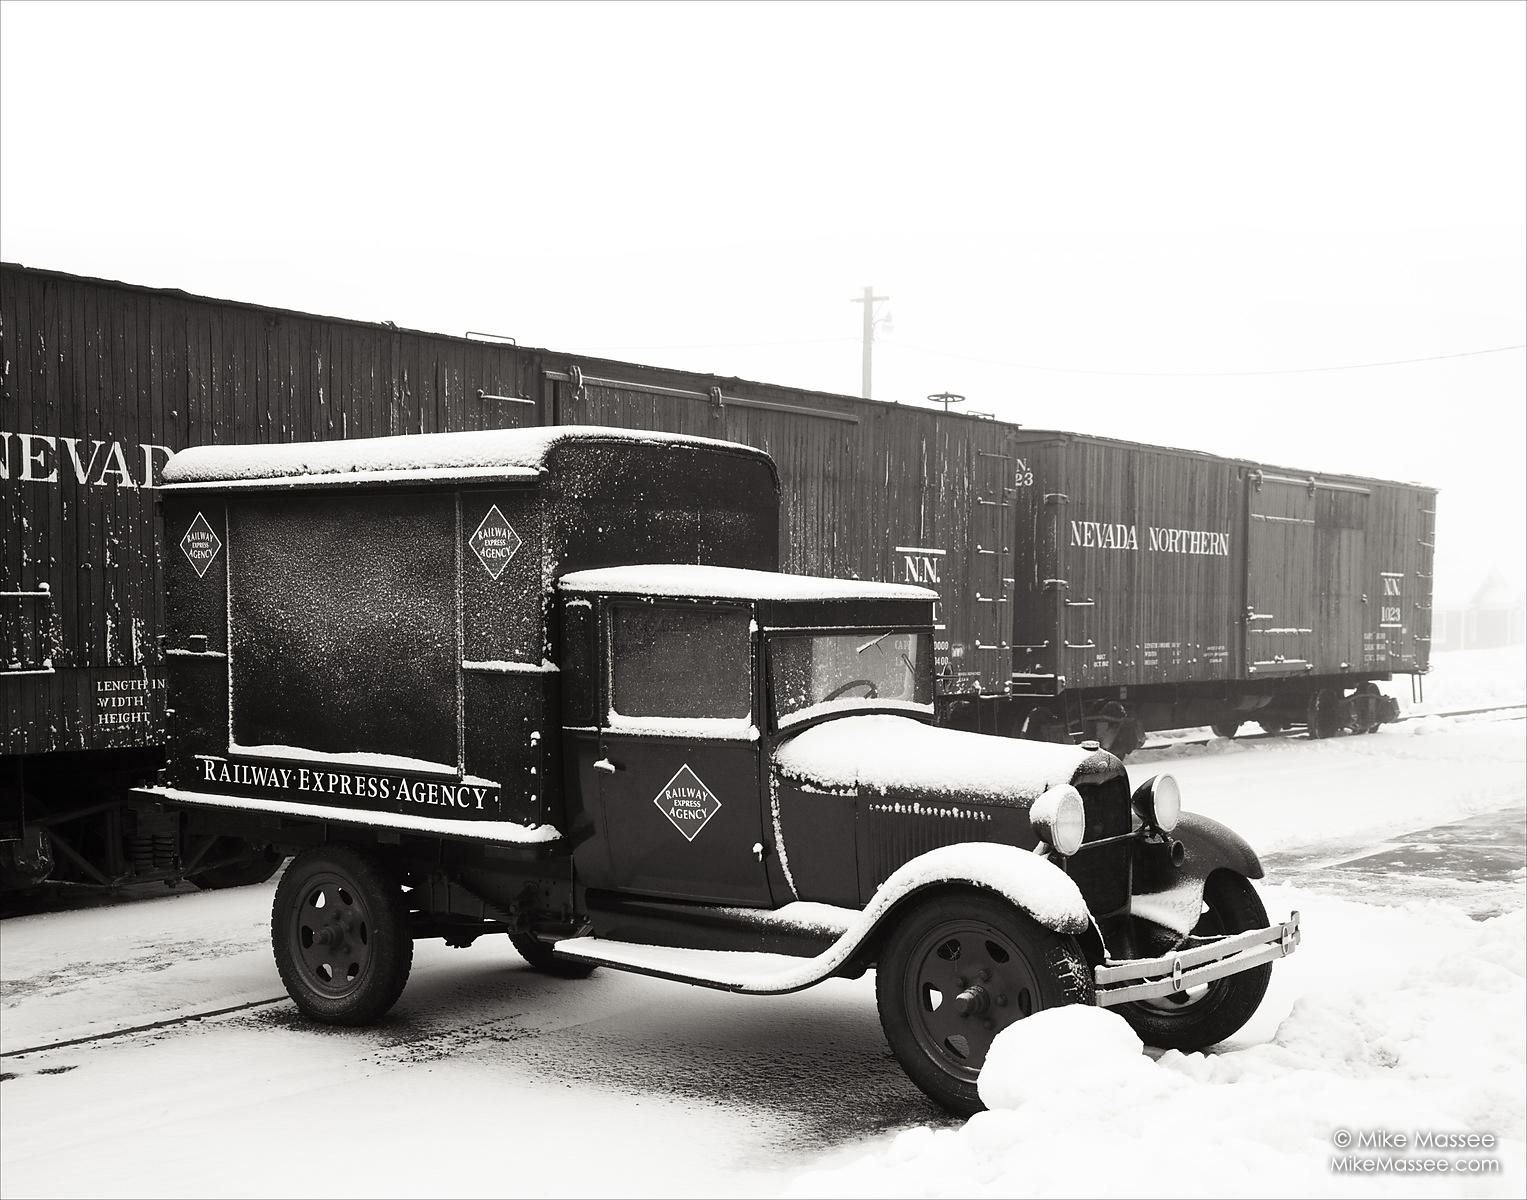 Nevada Northern Railway REA (Railway Express Agency) car